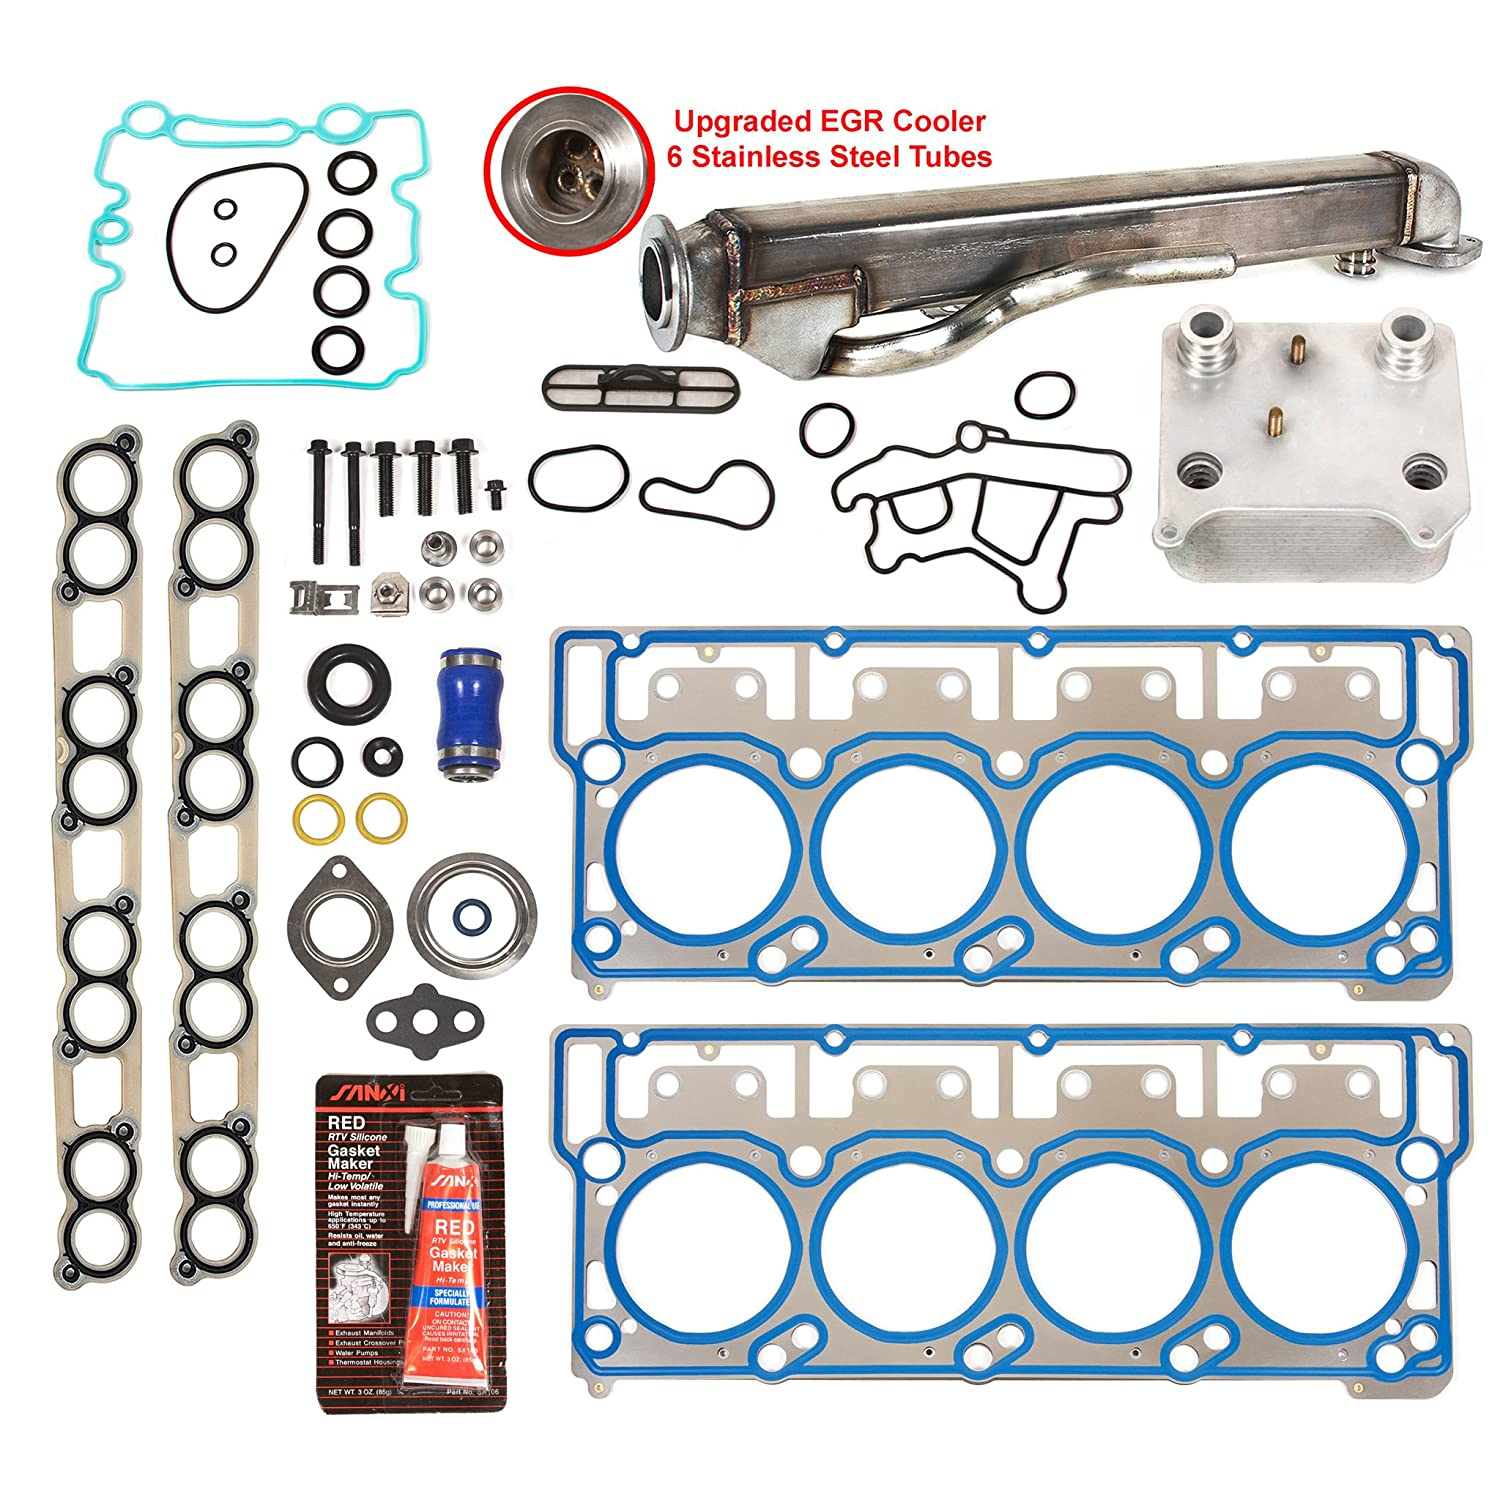 Evergreen egr-6.0-cnk-6 Temperatura de aceite, upgraded EGR enfriador Kit, y juntas de cabezal (18 mm pasadores) Ford V8 para cortacésped 6.0 Diesel Turbo: ...